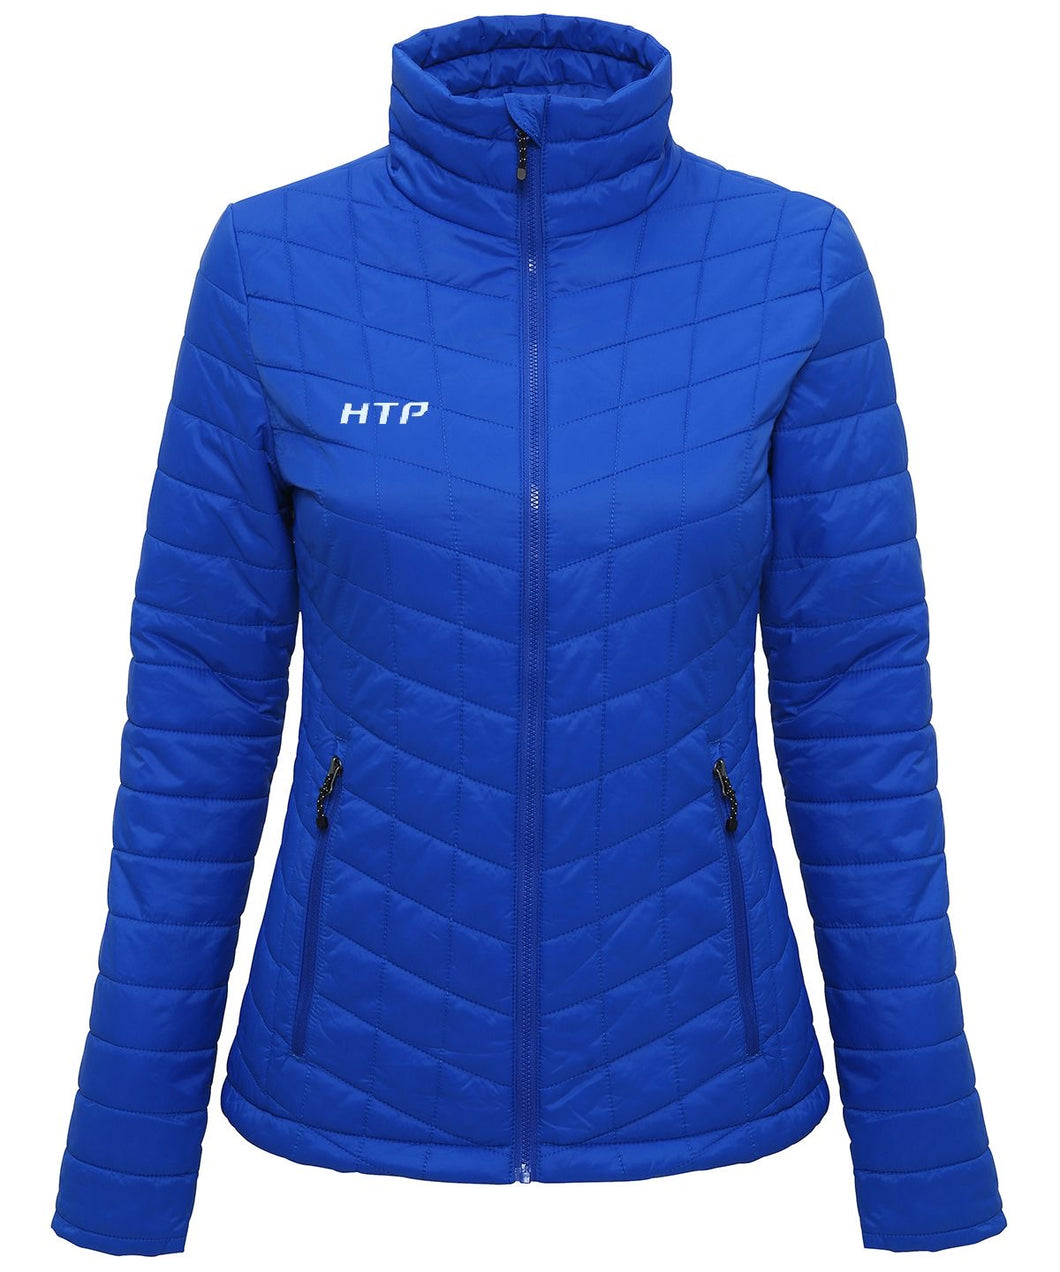 Ultralight Thermo Quilted Jacket Blue - Women's - Hydra Tech Pro